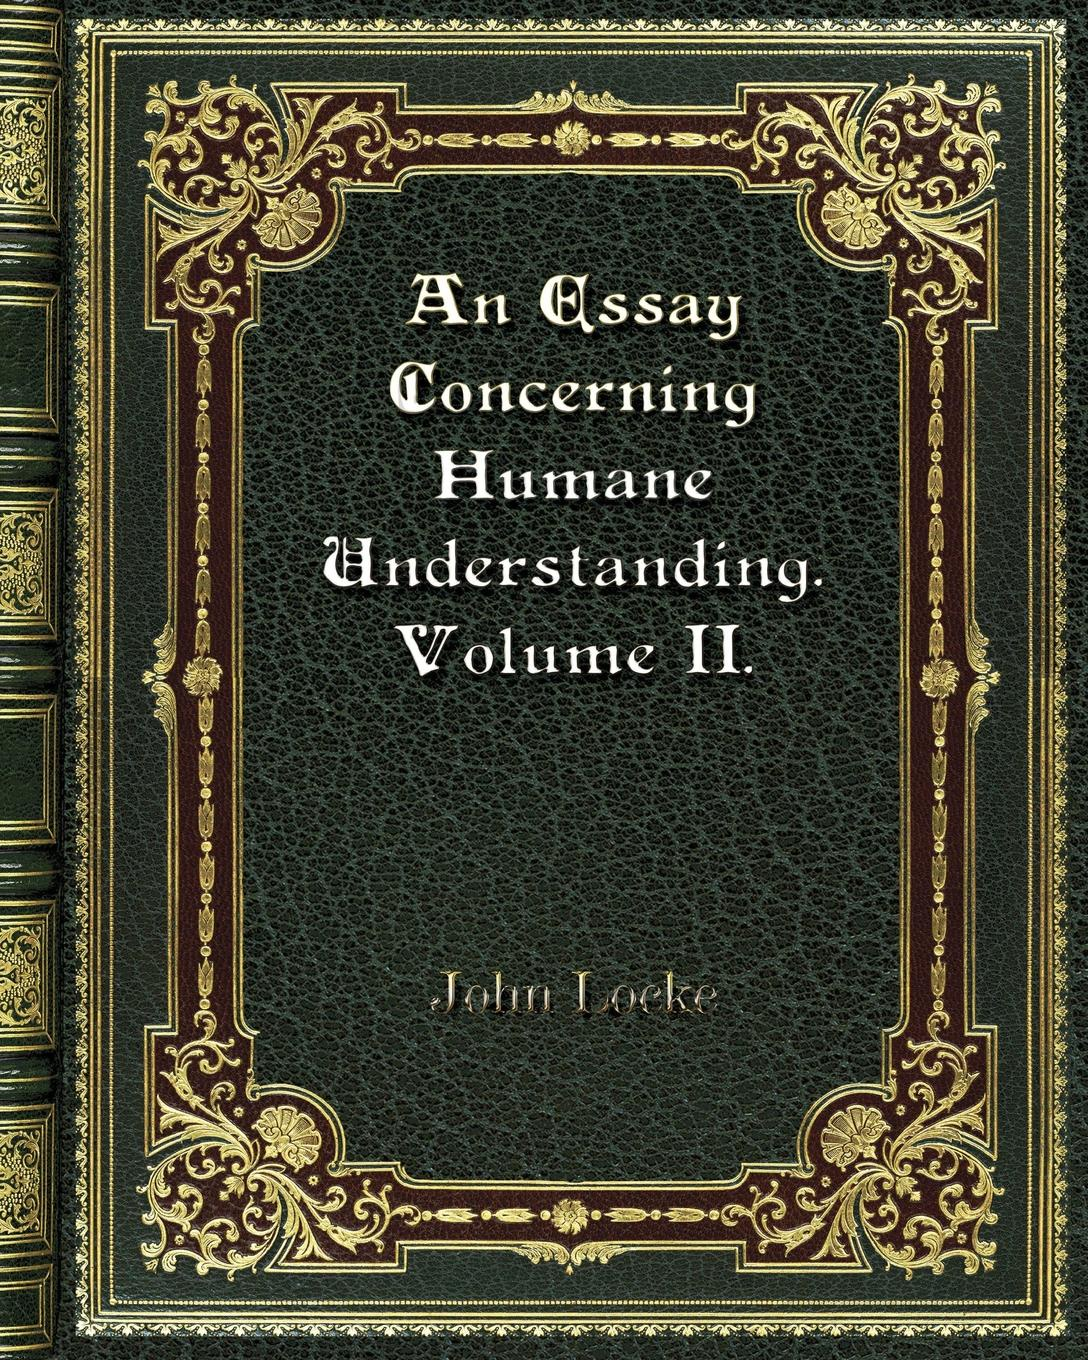 John Locke An Essay Concerning Humane Understanding. Volume II. adrian rogers foundations for our faith volume 1 2nd edition romans 1 4